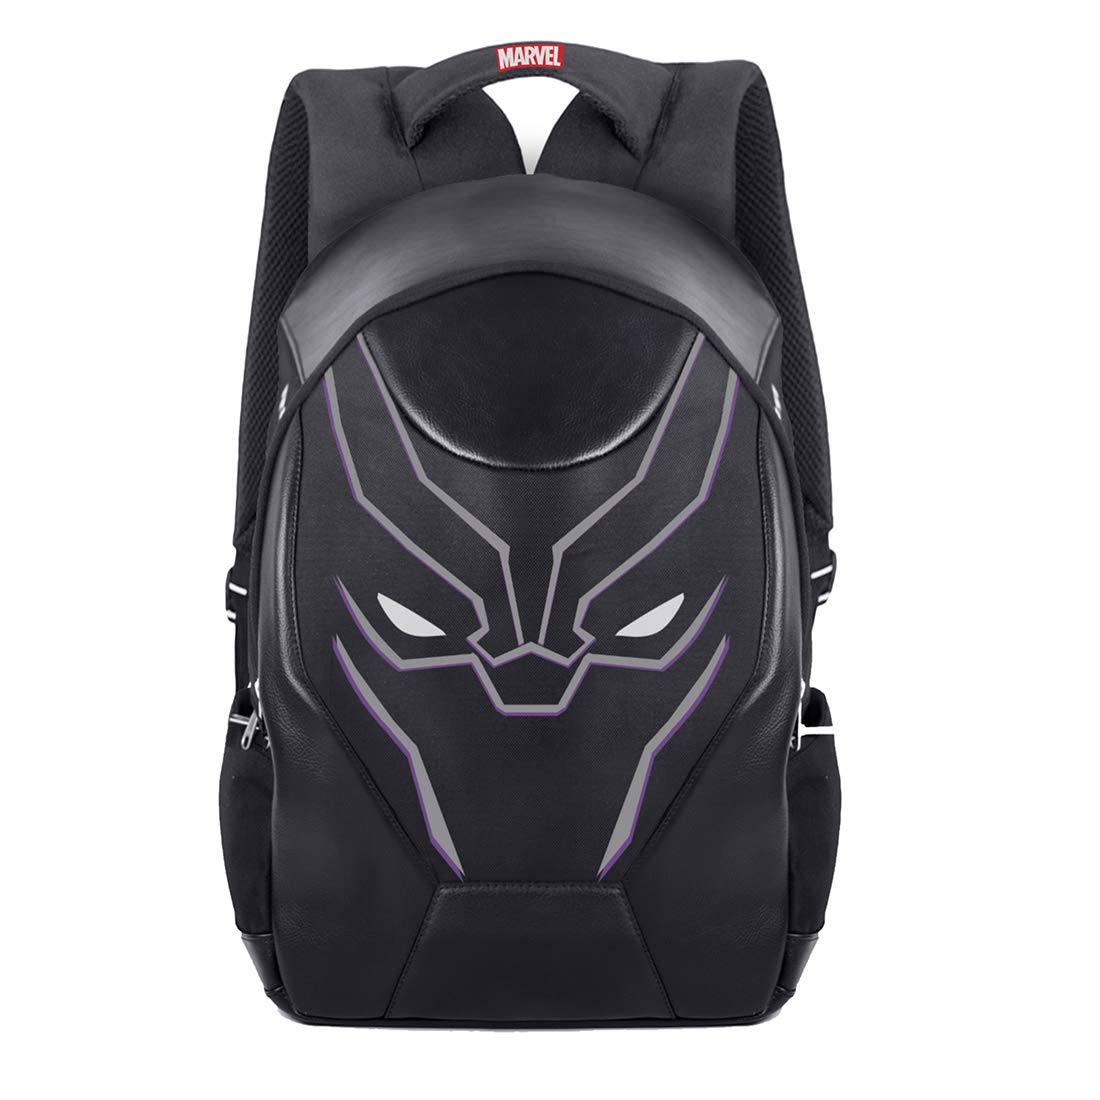 GODS Marvel Avengers Exclusive Rudra 15.6 Inch Laptop Backpack (Black Panther) product image